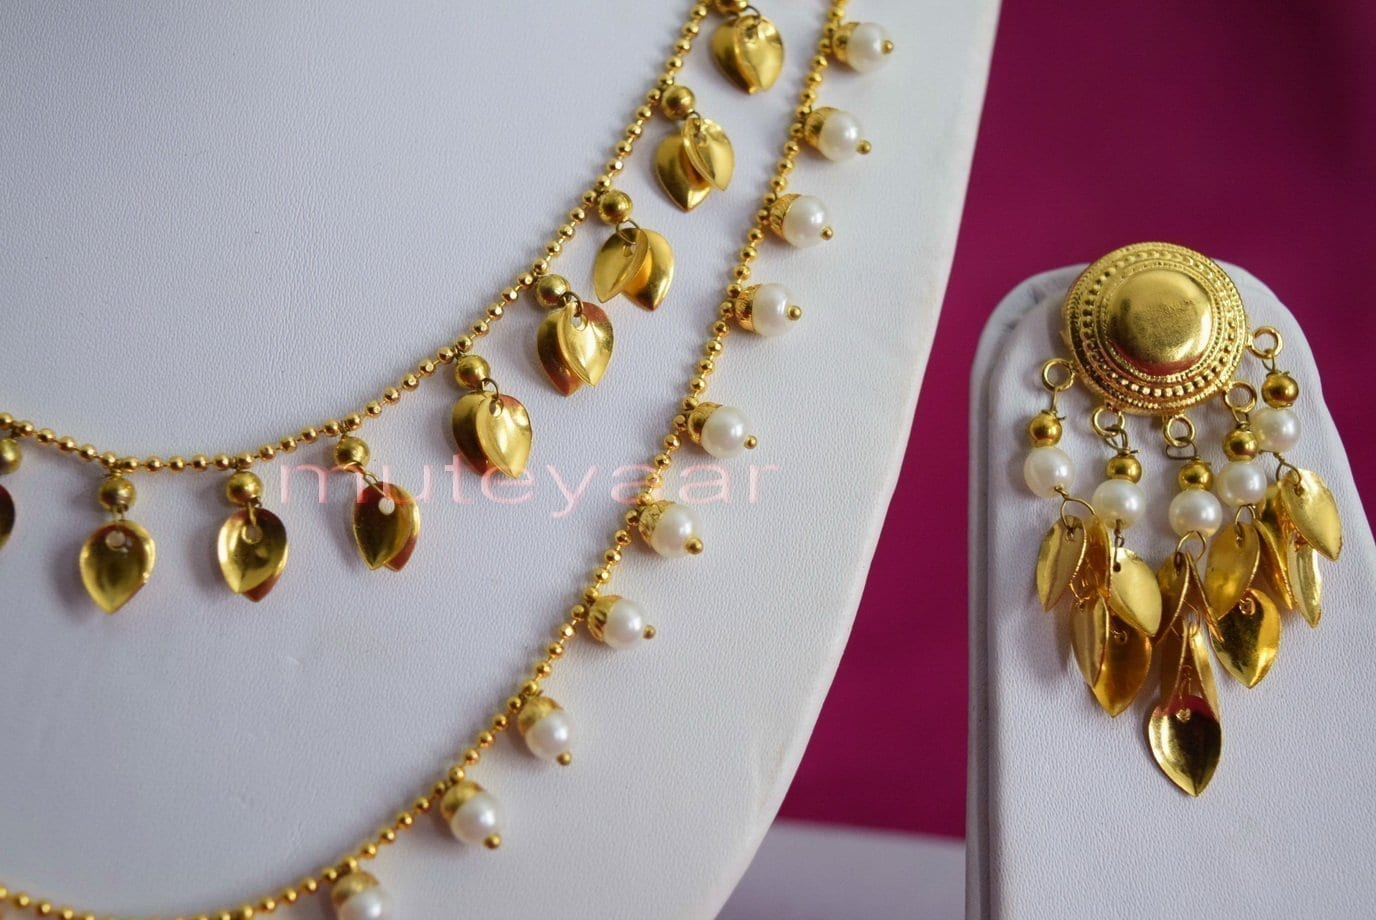 24 Ct. Gold Plated Traditional Punjabi Double Chain Earrings jewellery set J0208 2